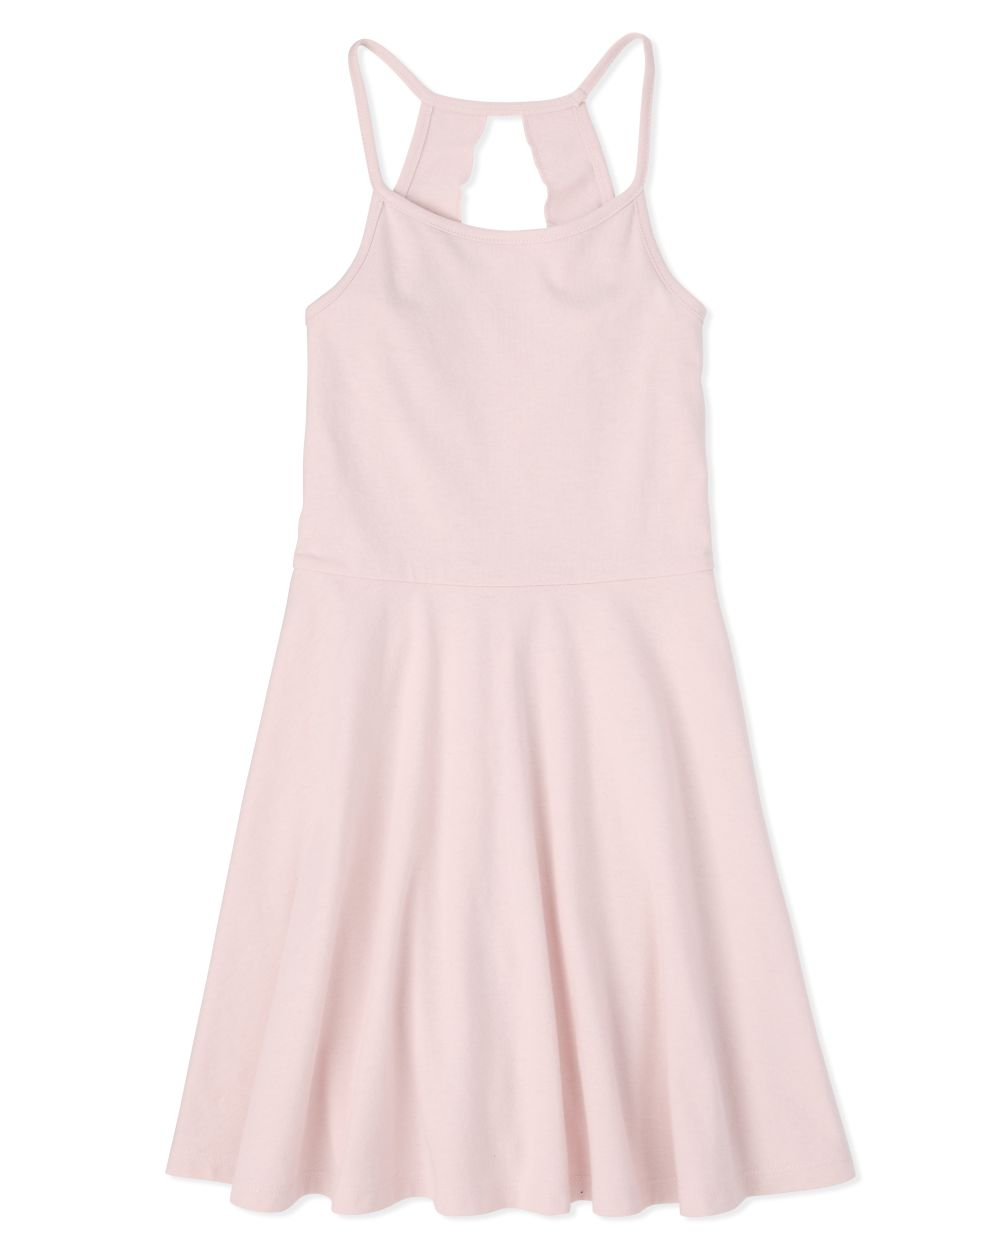 Girls Cut Out Dress